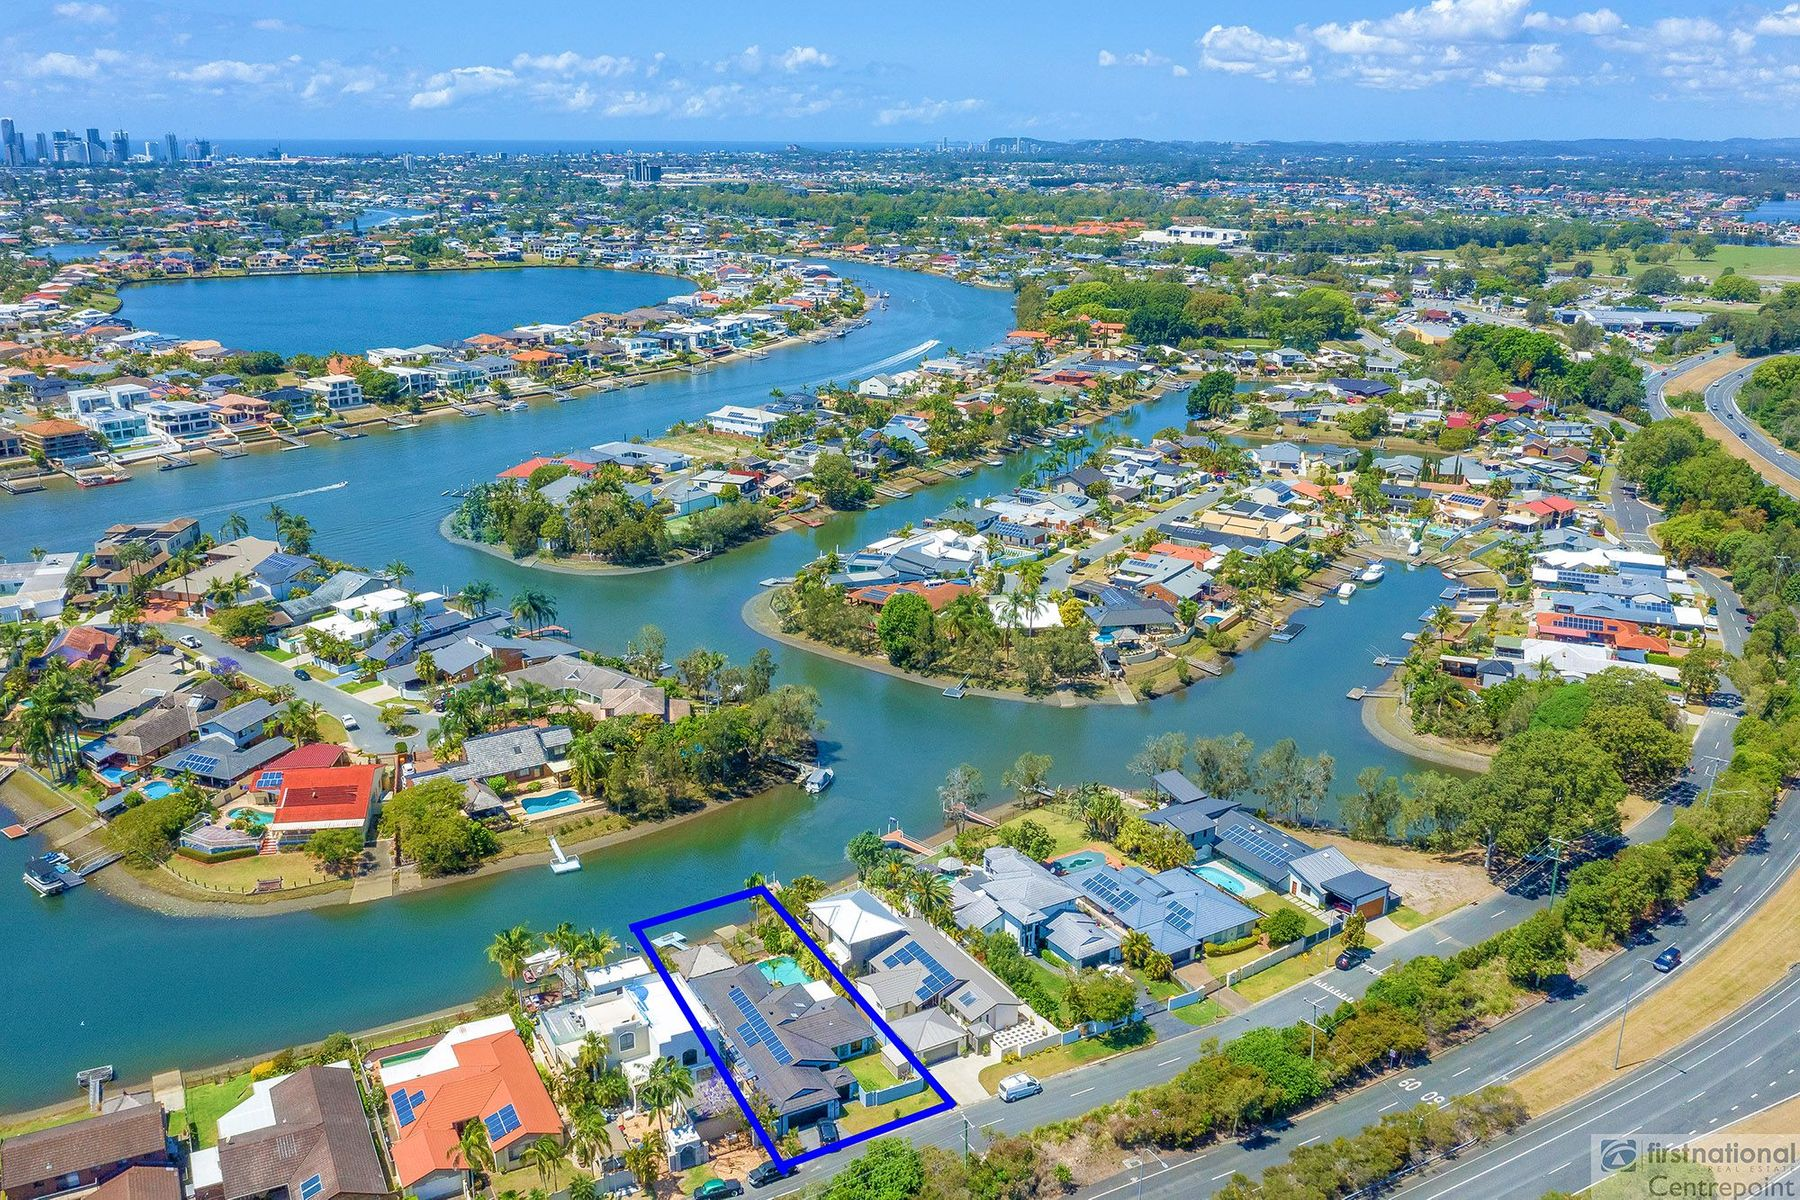 85 Witt Avenue, Carrara, QLD 4211